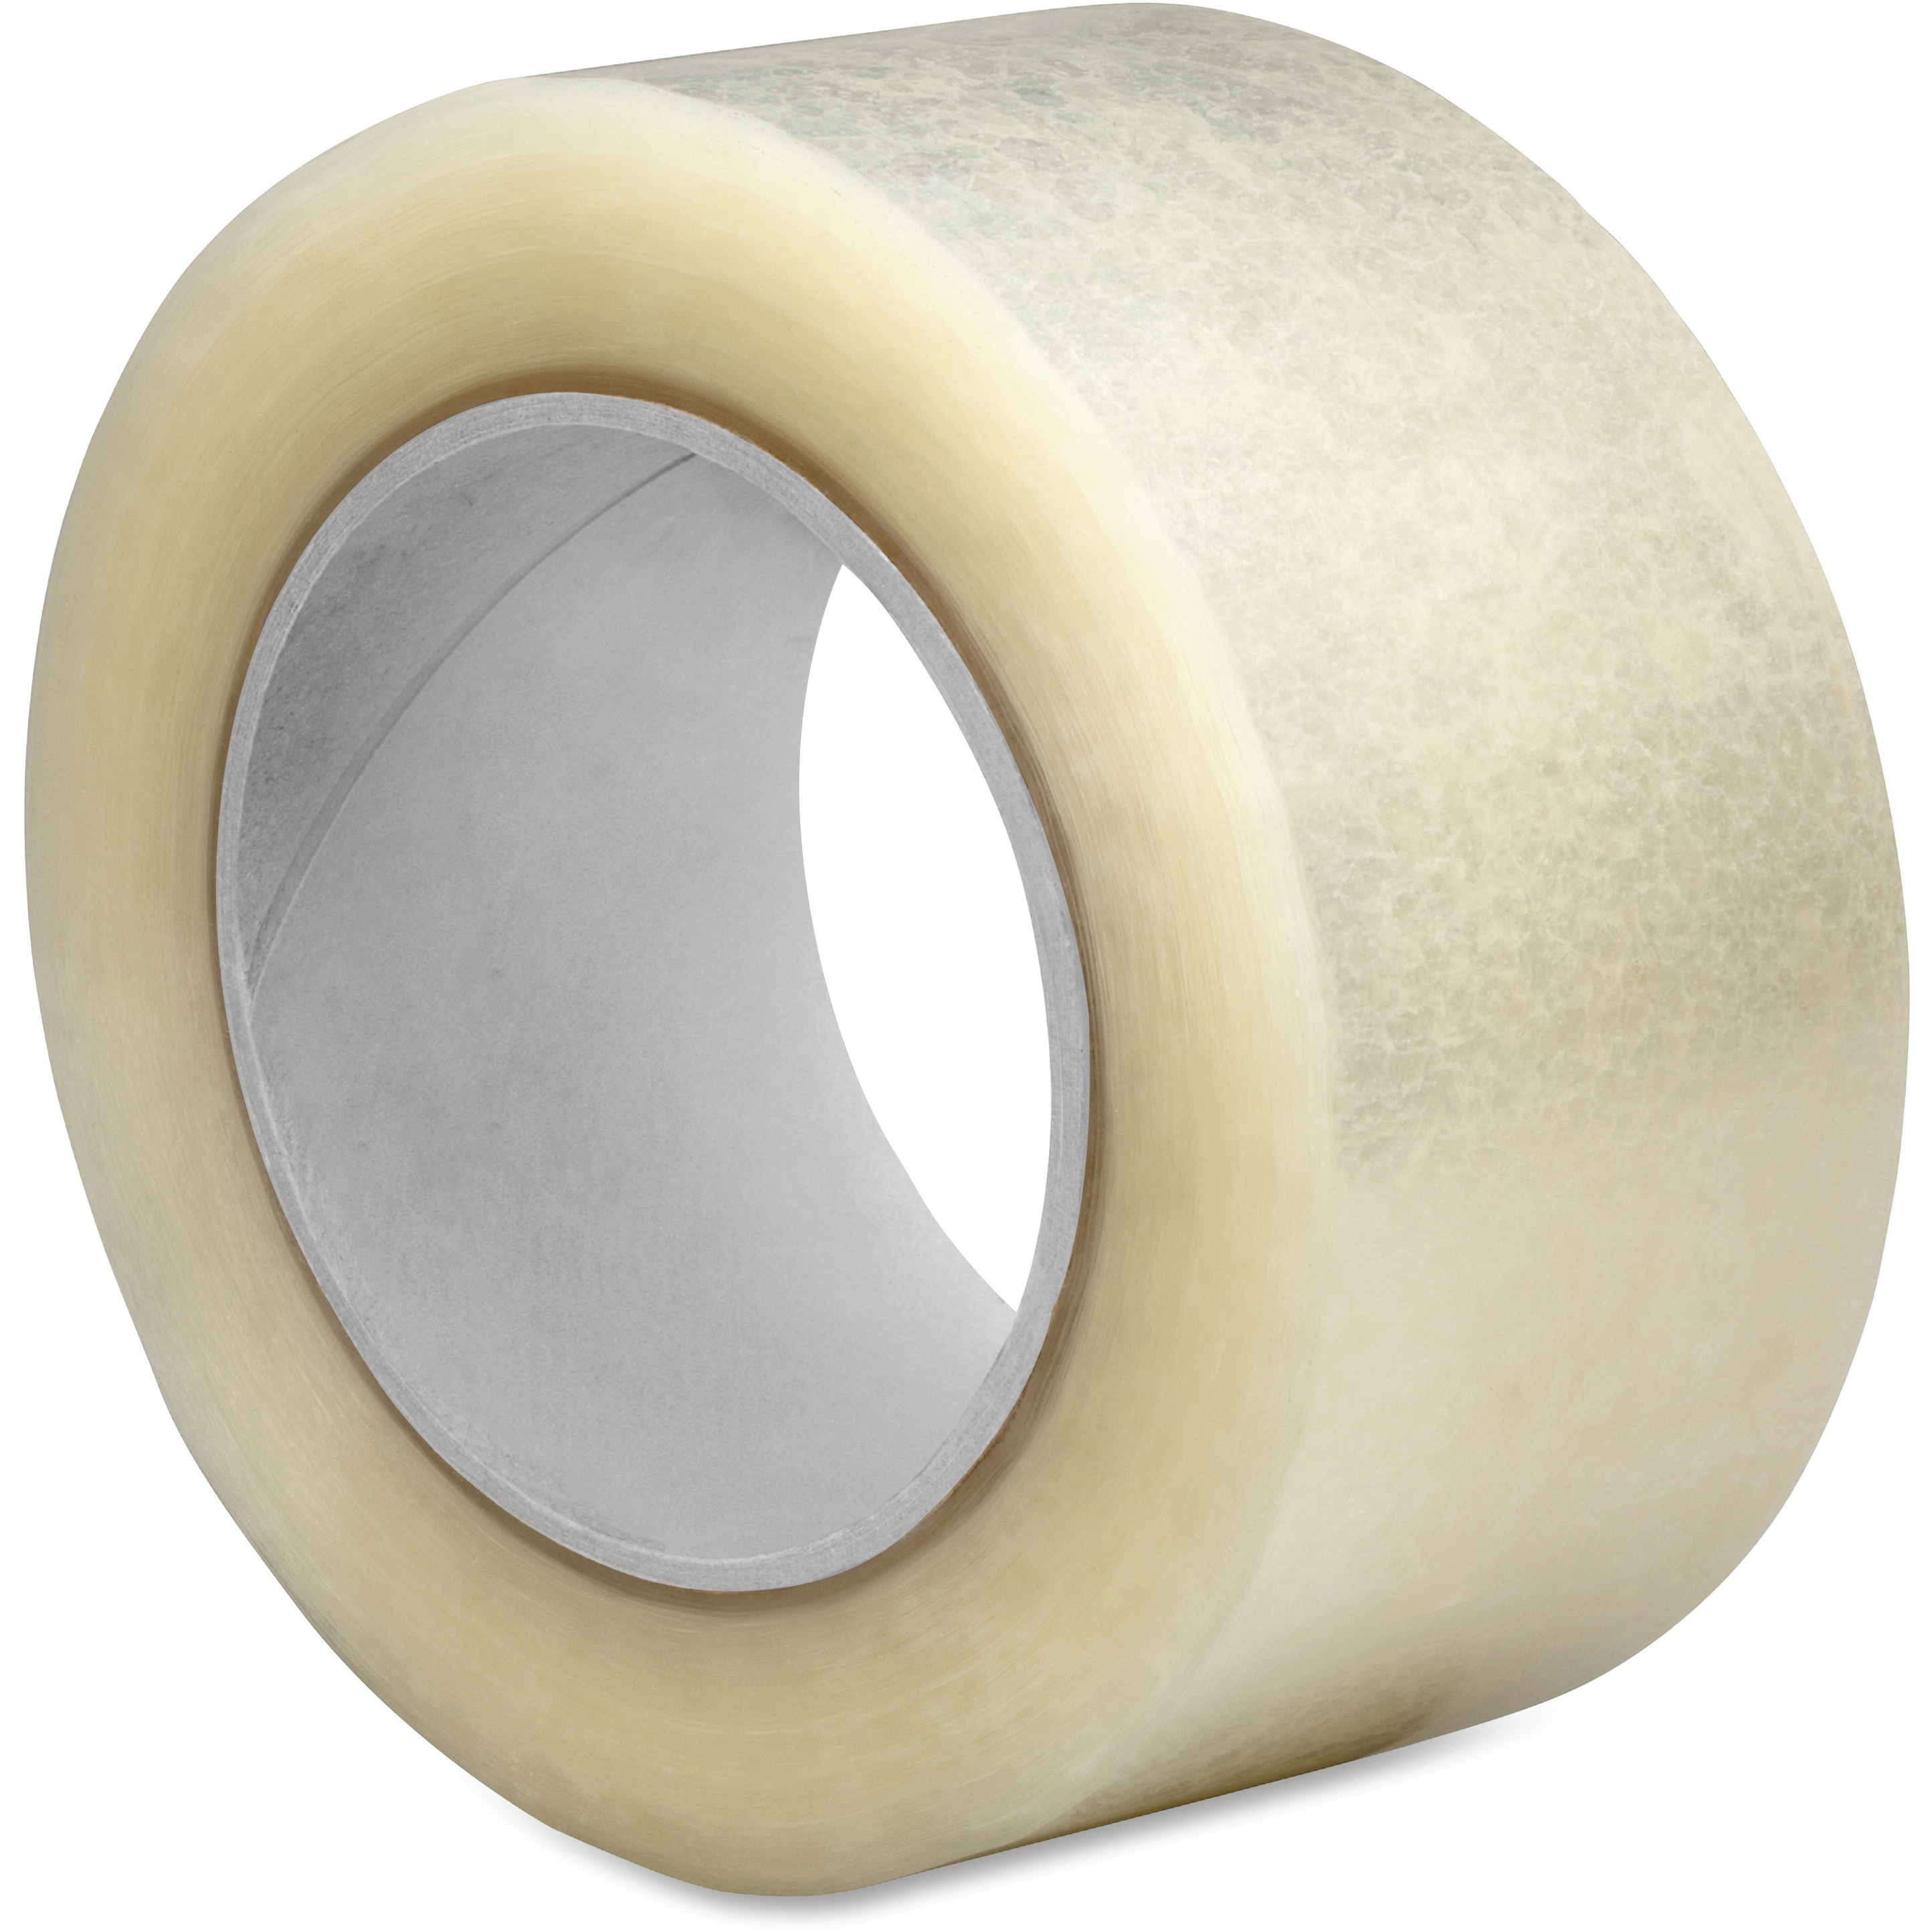 Sparco, SPR74951, 2.5mil Hot-melt Sealing Tape, 36 / Carton, Clear